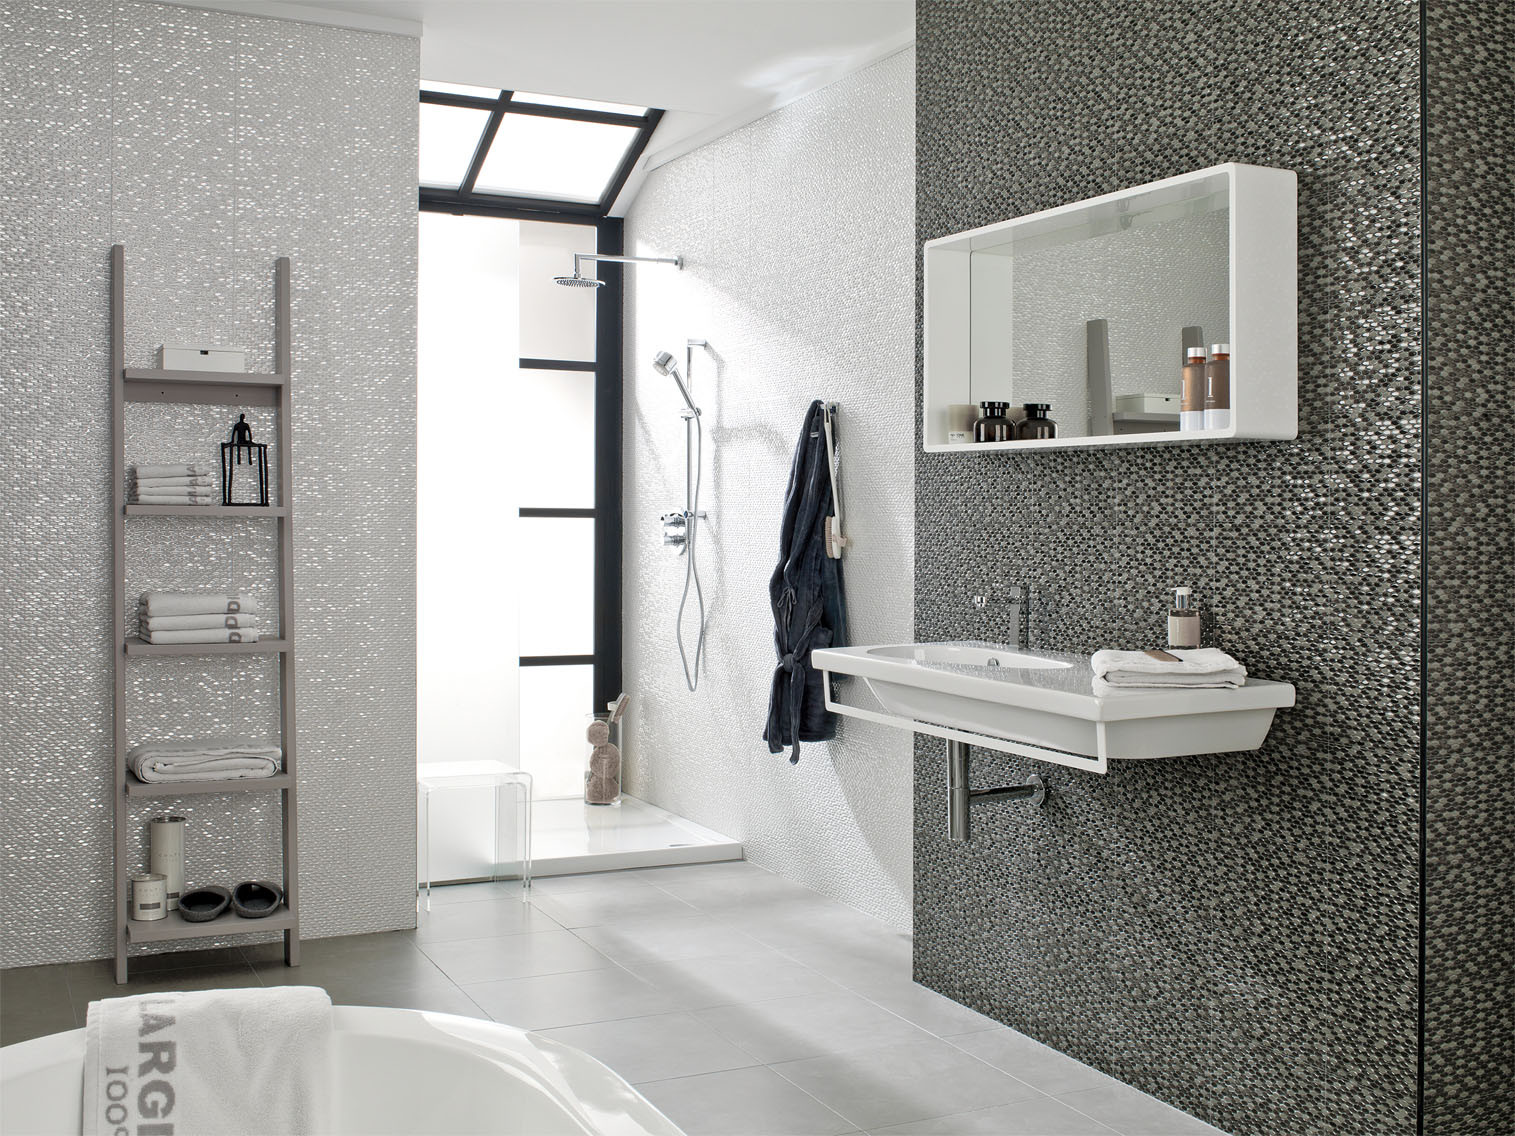 Porcelanosa madison antracita 31 6 x 90 cm maison - Carrelage salle de bain design ...